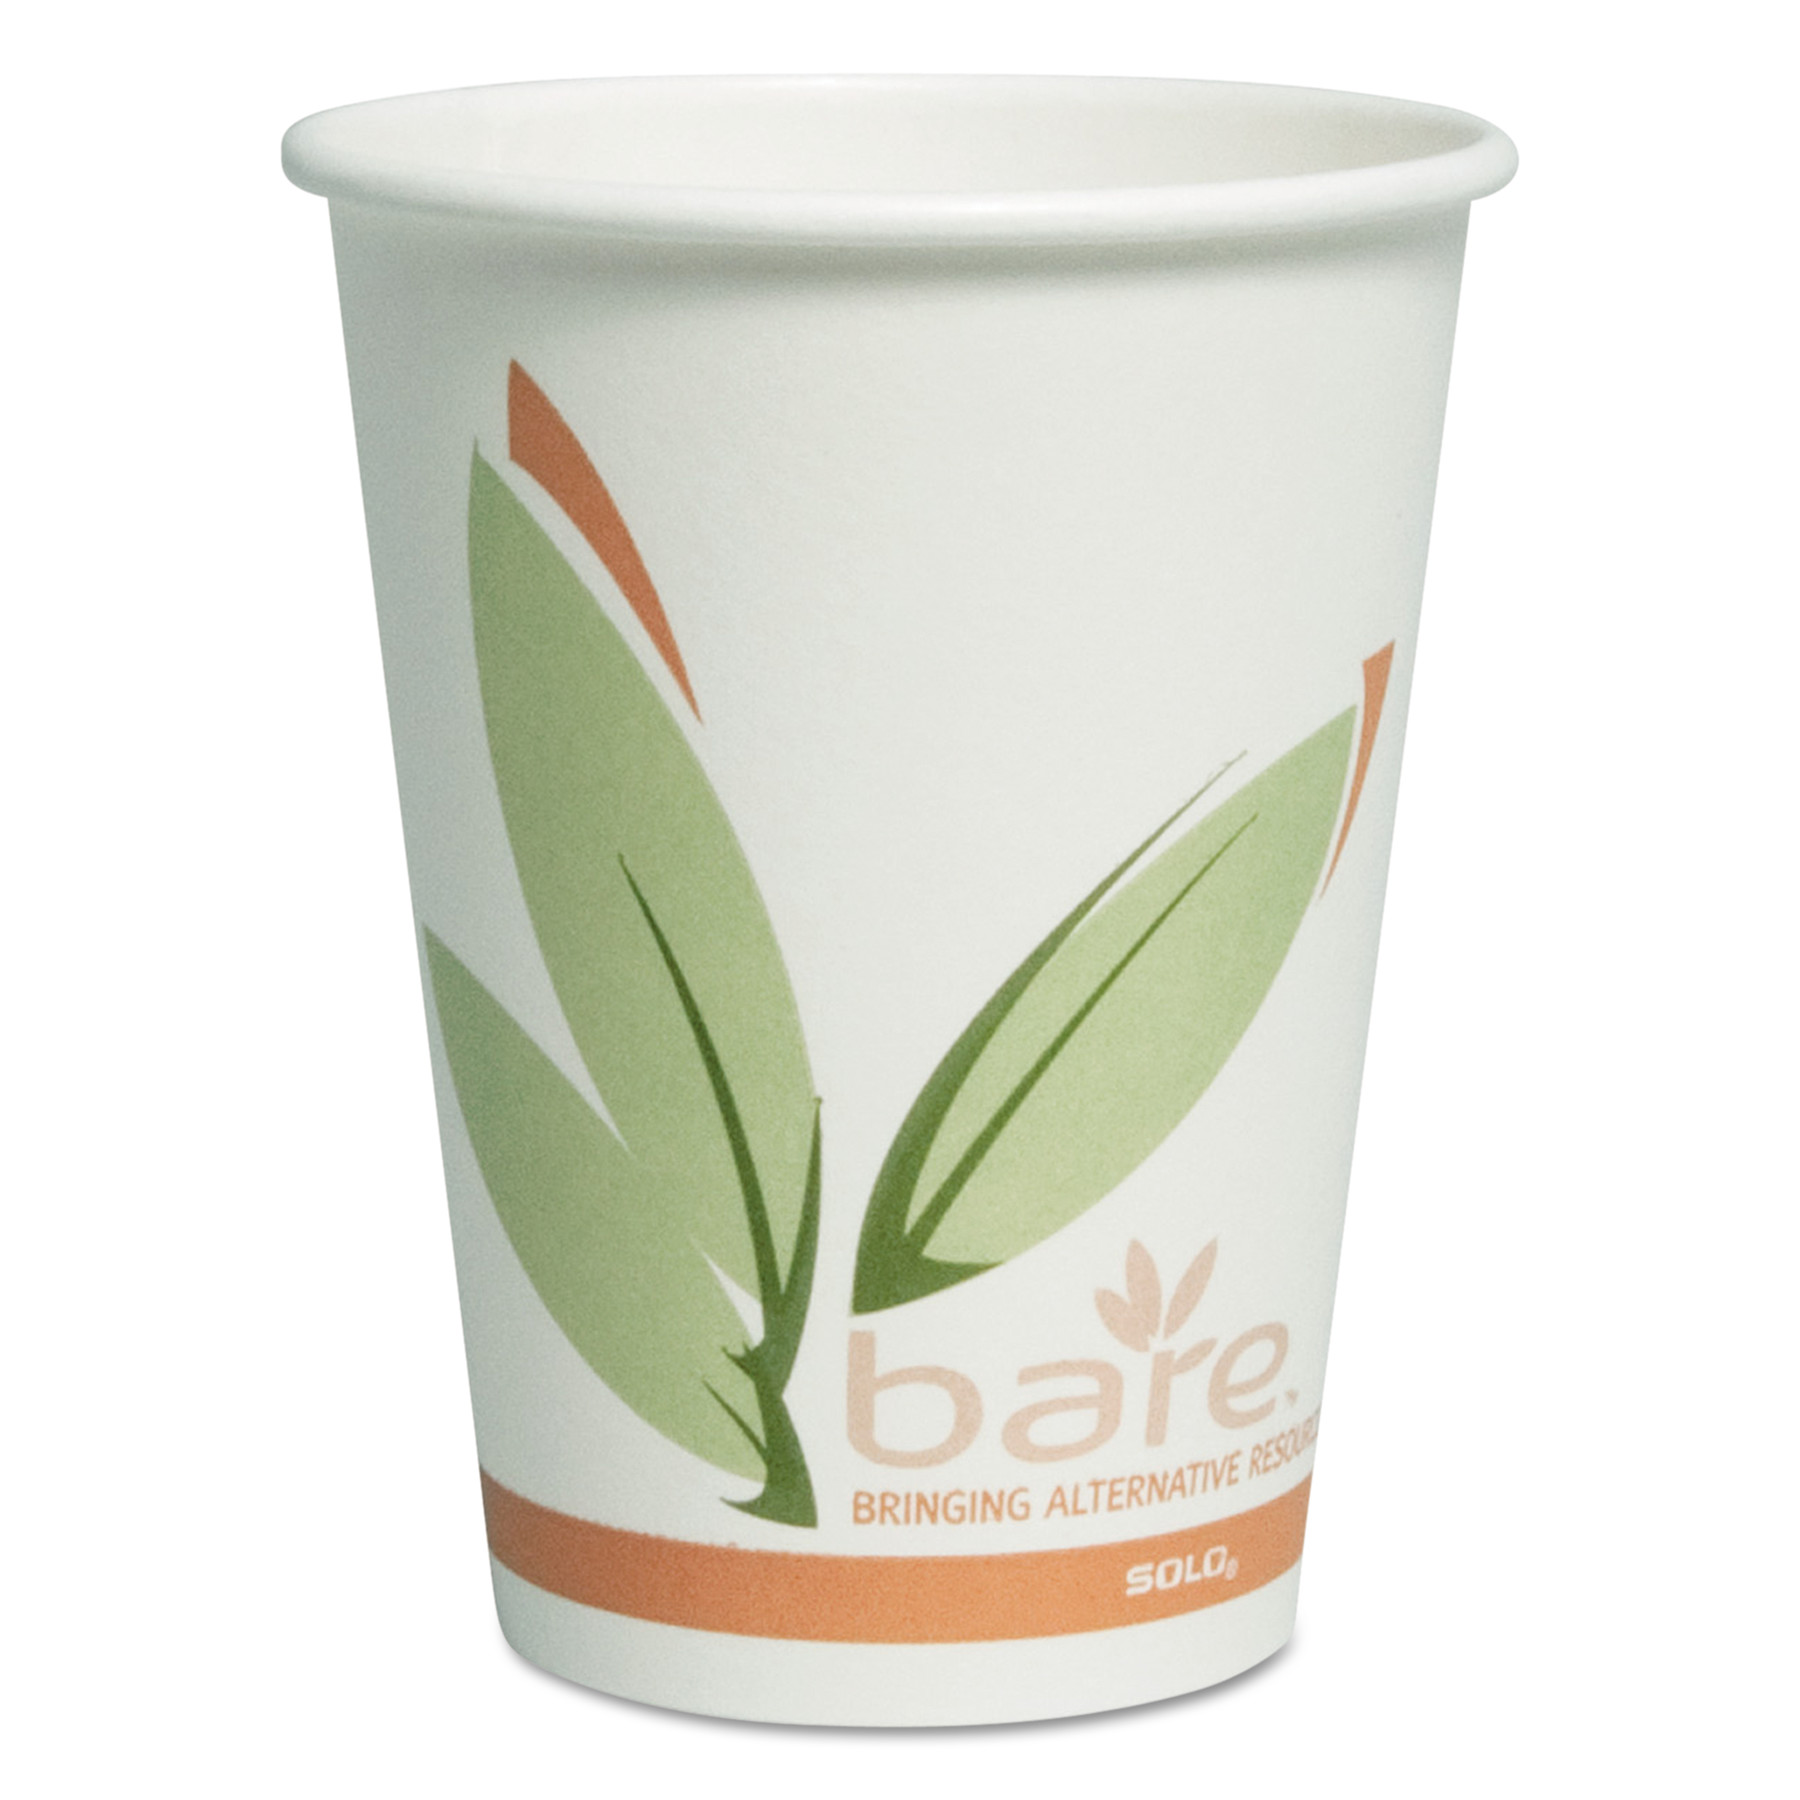 SOLO Cup Company Bare by Solo Eco-Forward Recycled Content PCF Paper Hot Cups, 12 oz, 300/Carton